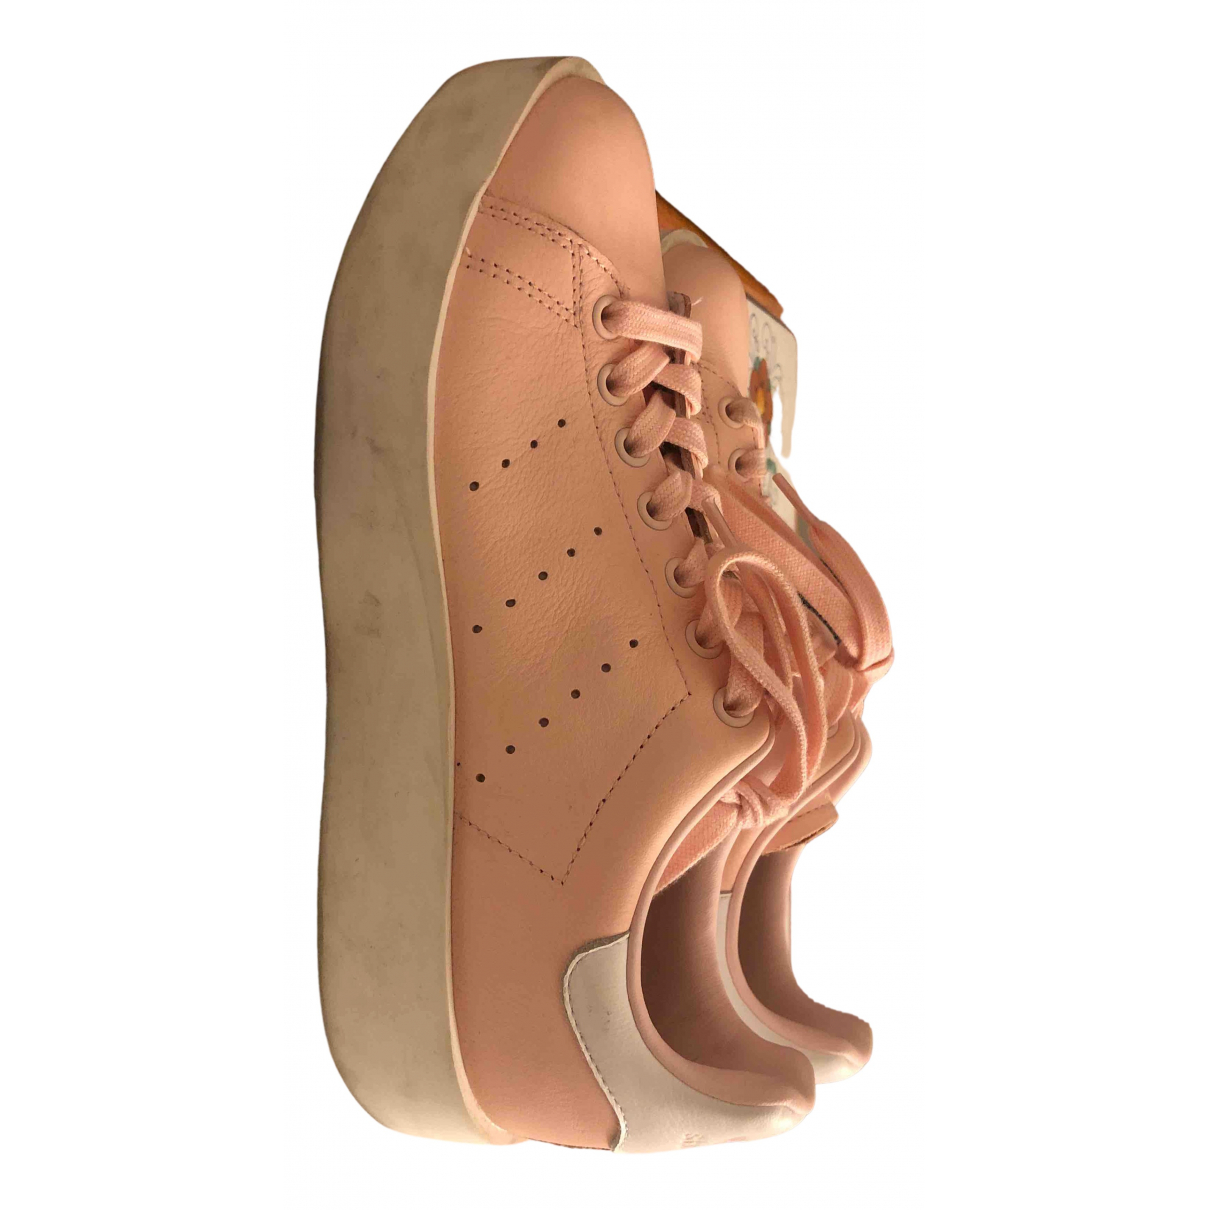 Adidas Stan Smith Pink Leather Trainers for Women 8.5 US